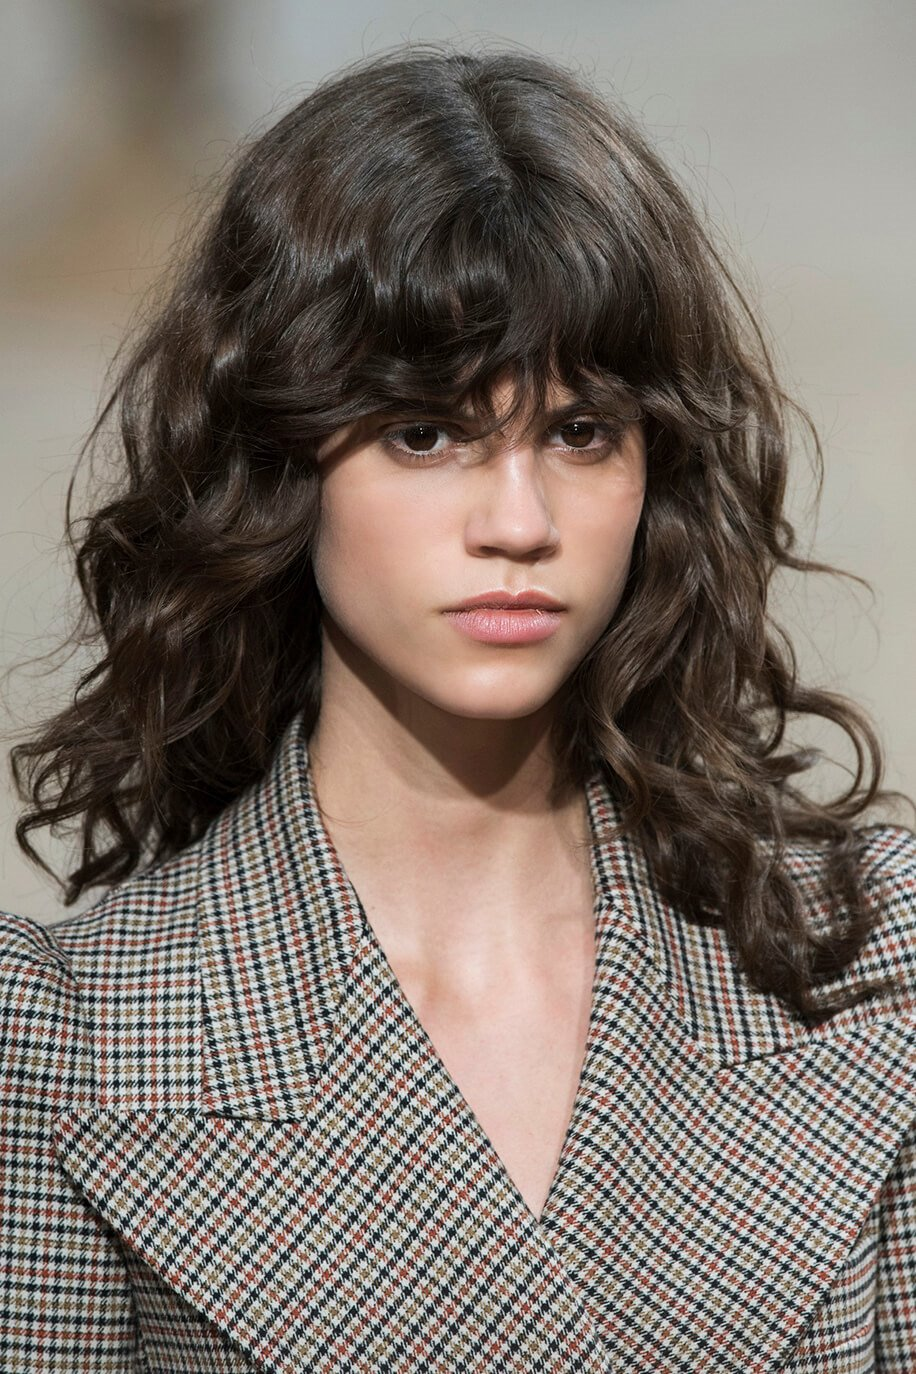 15 Most Outstanding Curly Hairstyles With Bangs 2019 - Fashionre